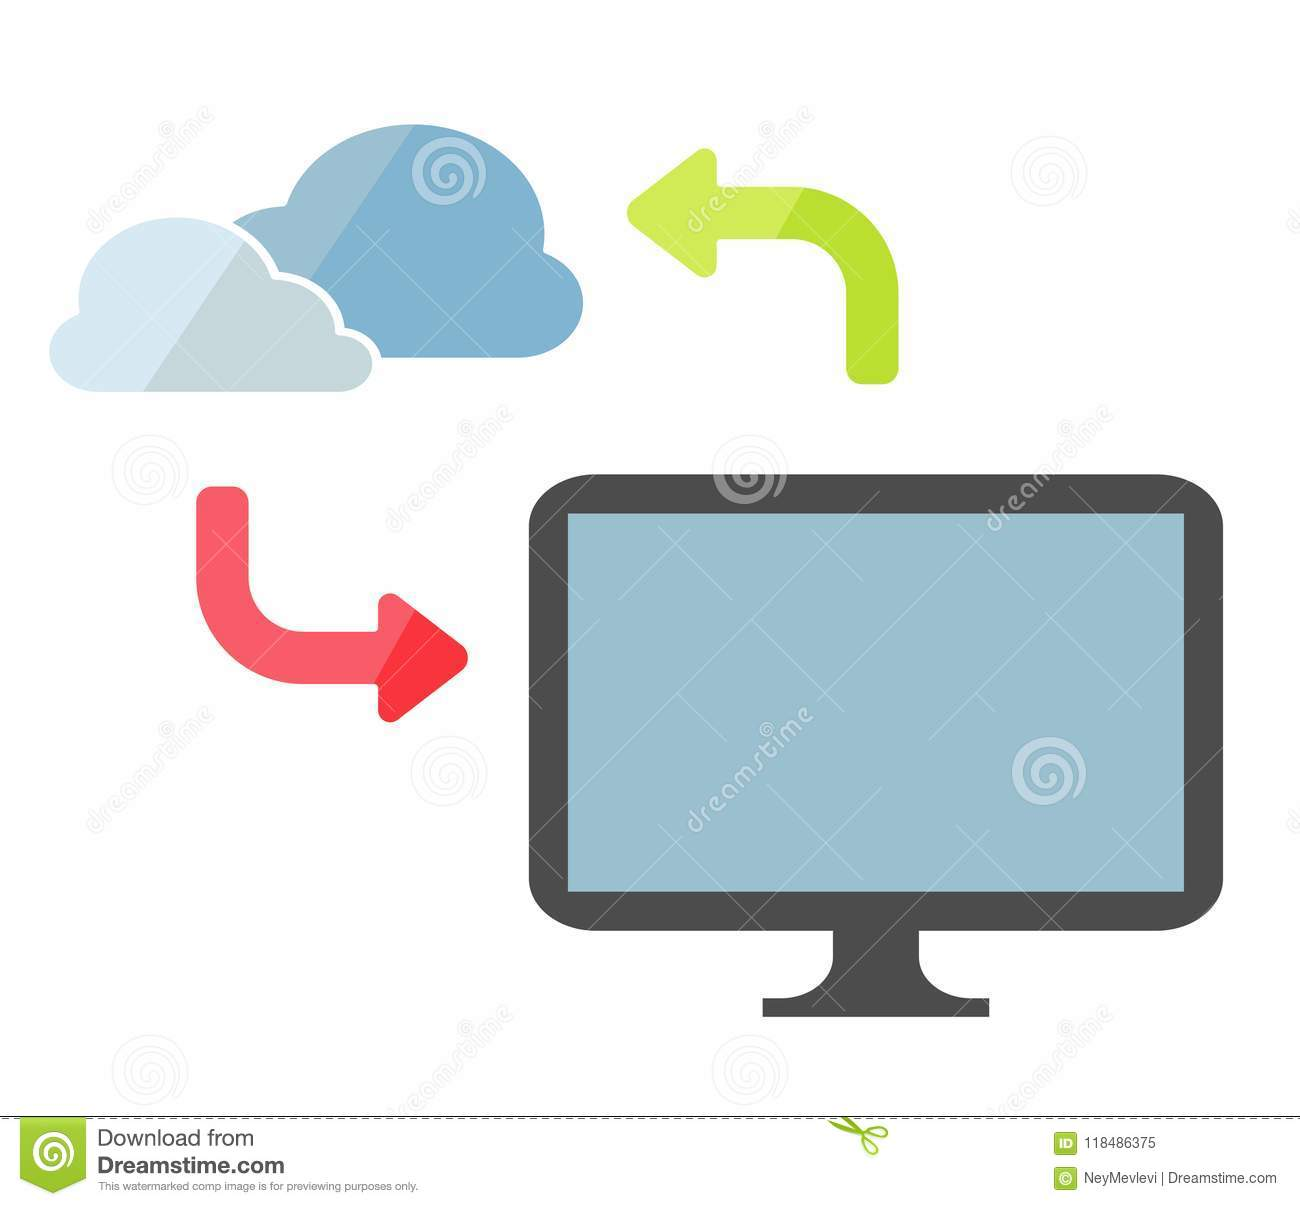 Computer or pc or notebook and online cloud storage